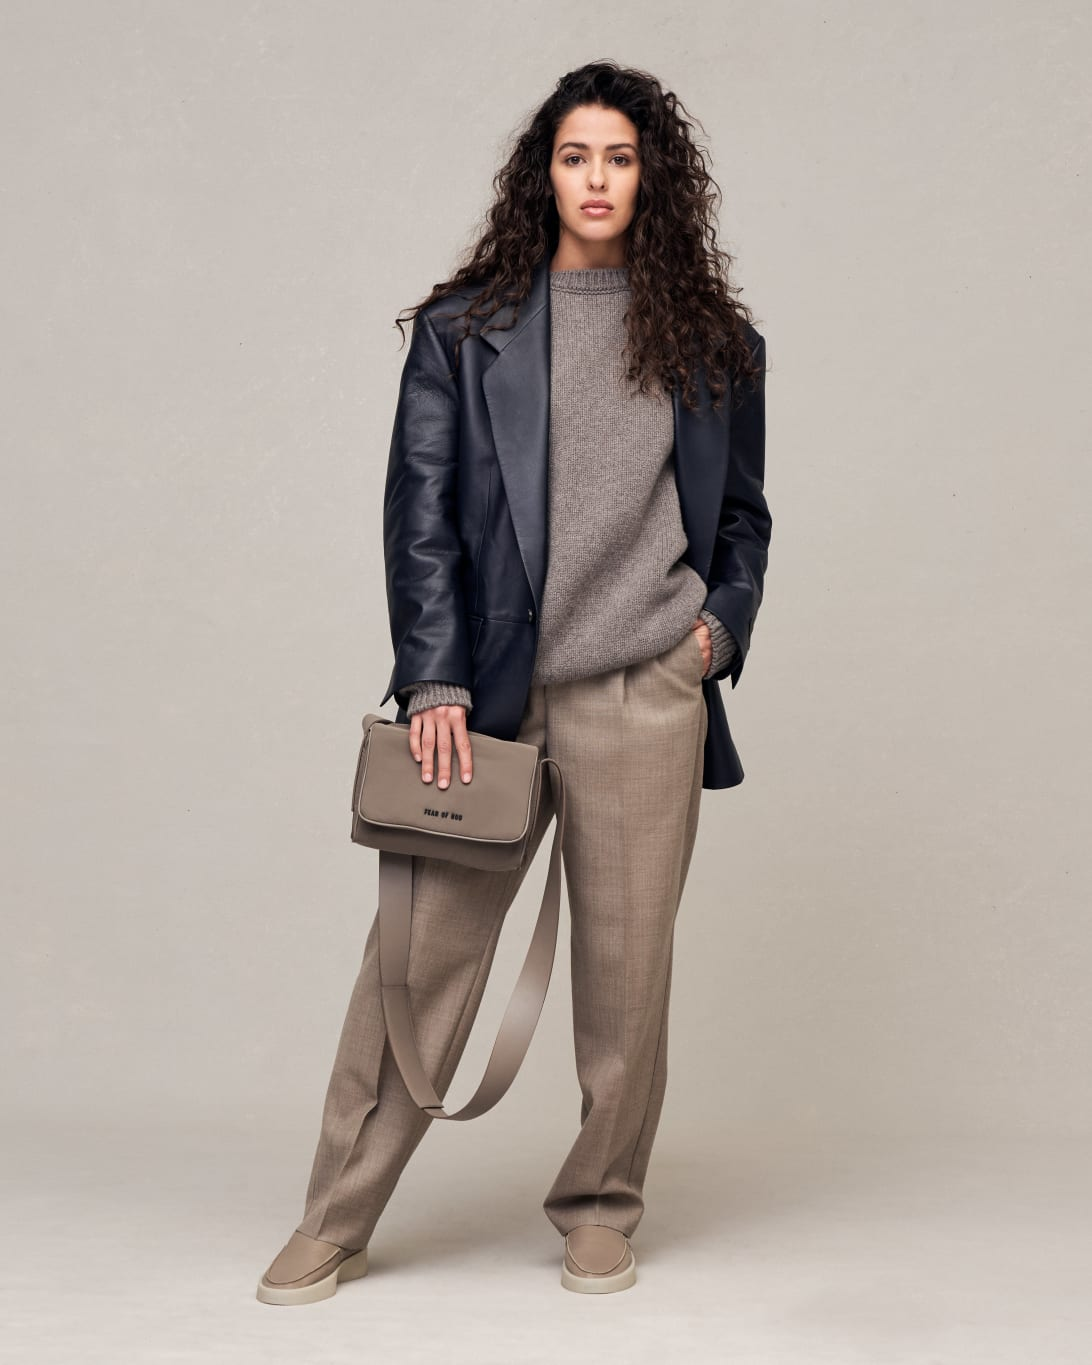 Seventh Collection | Fall/Winter Lookbook Look 27